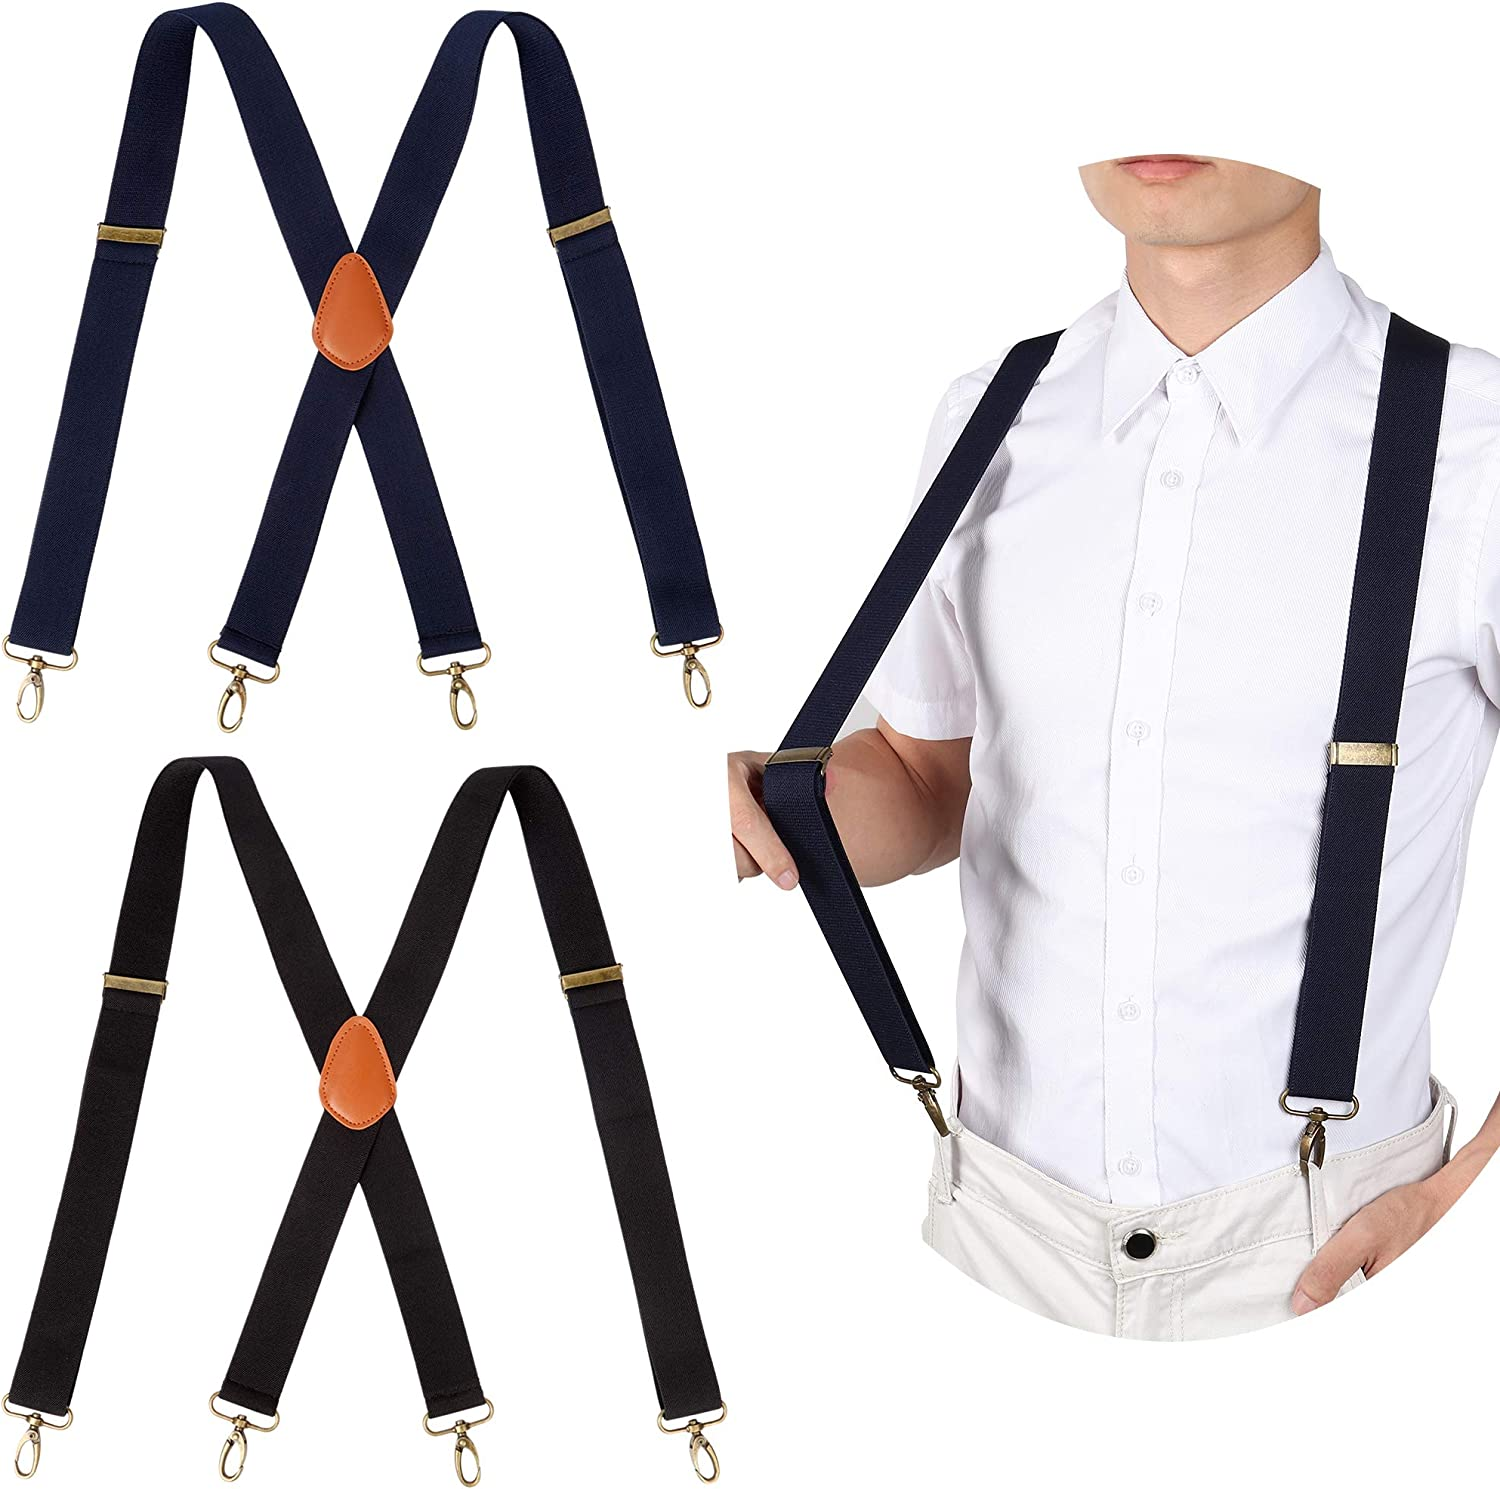 2PCS Mens Suspenders Heavy Duty Strong Hooks Adjustable Elastic Braces Big  and Tall X-Back (1xBlack+1xBlue) at Amazon Men's Clothing store